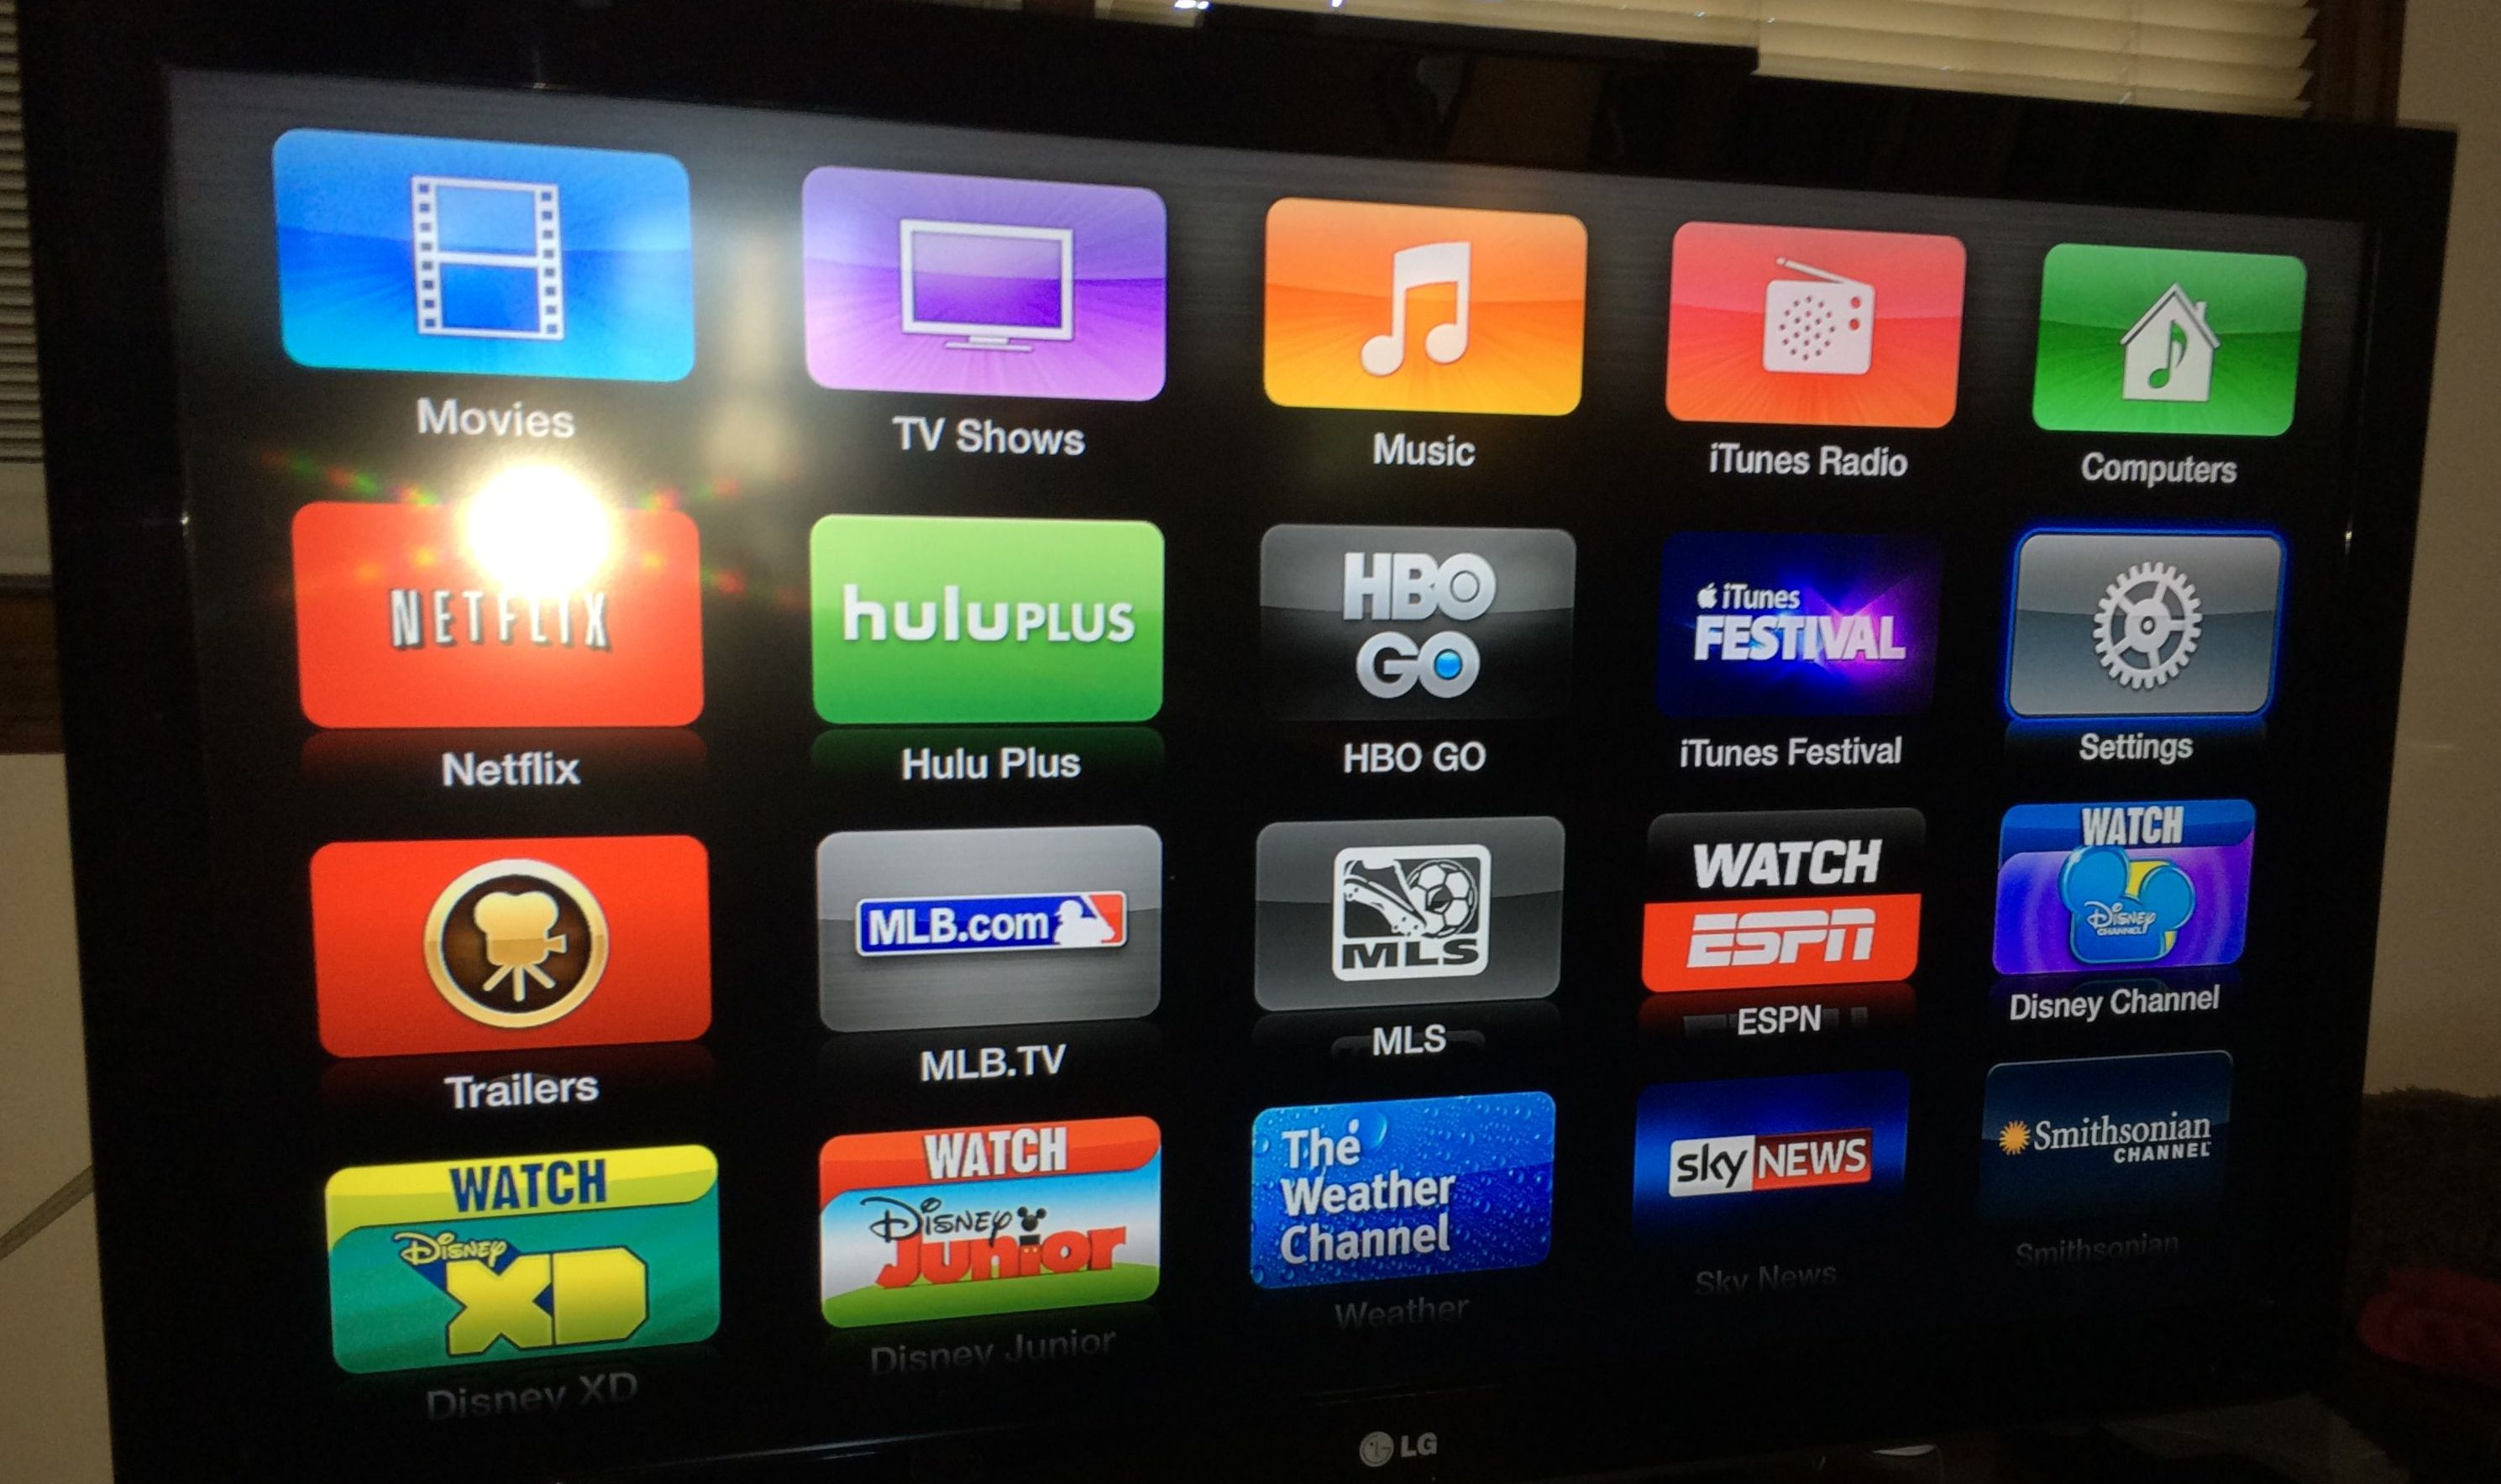 Major League Soccer And Disney Junior Now Available On The Apple TV